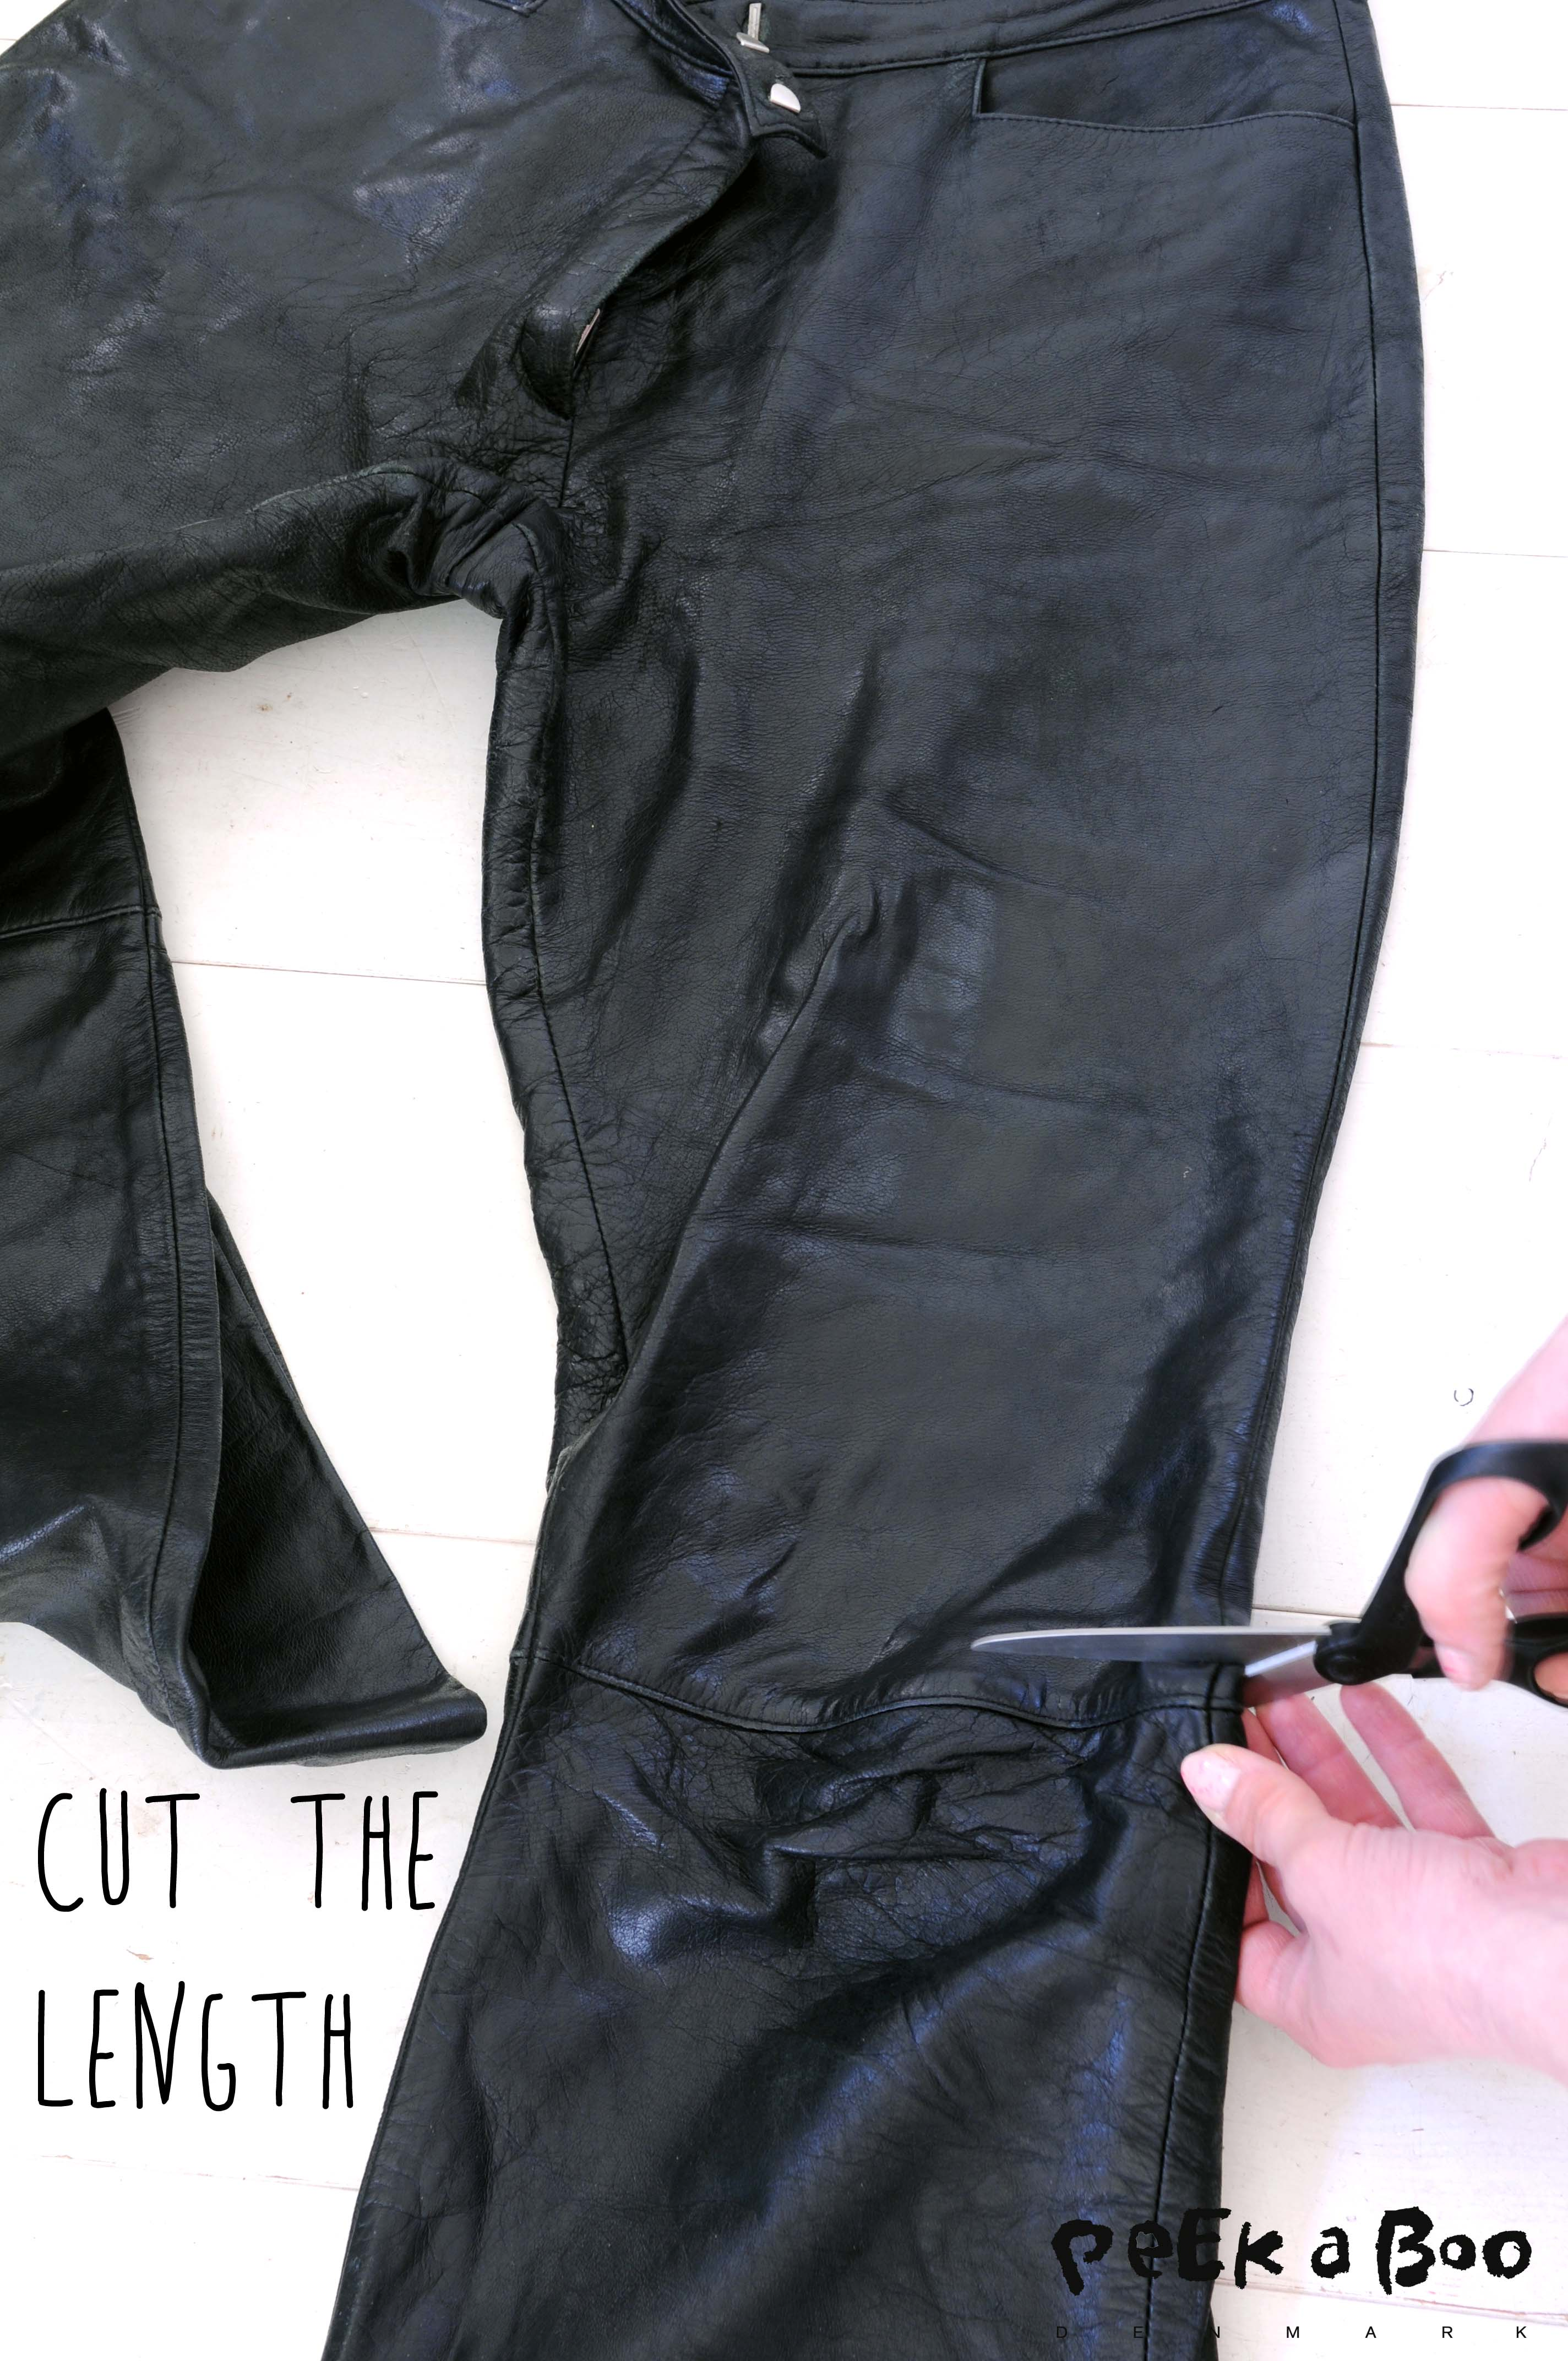 Cut off the length just above the knee. Fold the lining out, so you don't cut that yet.